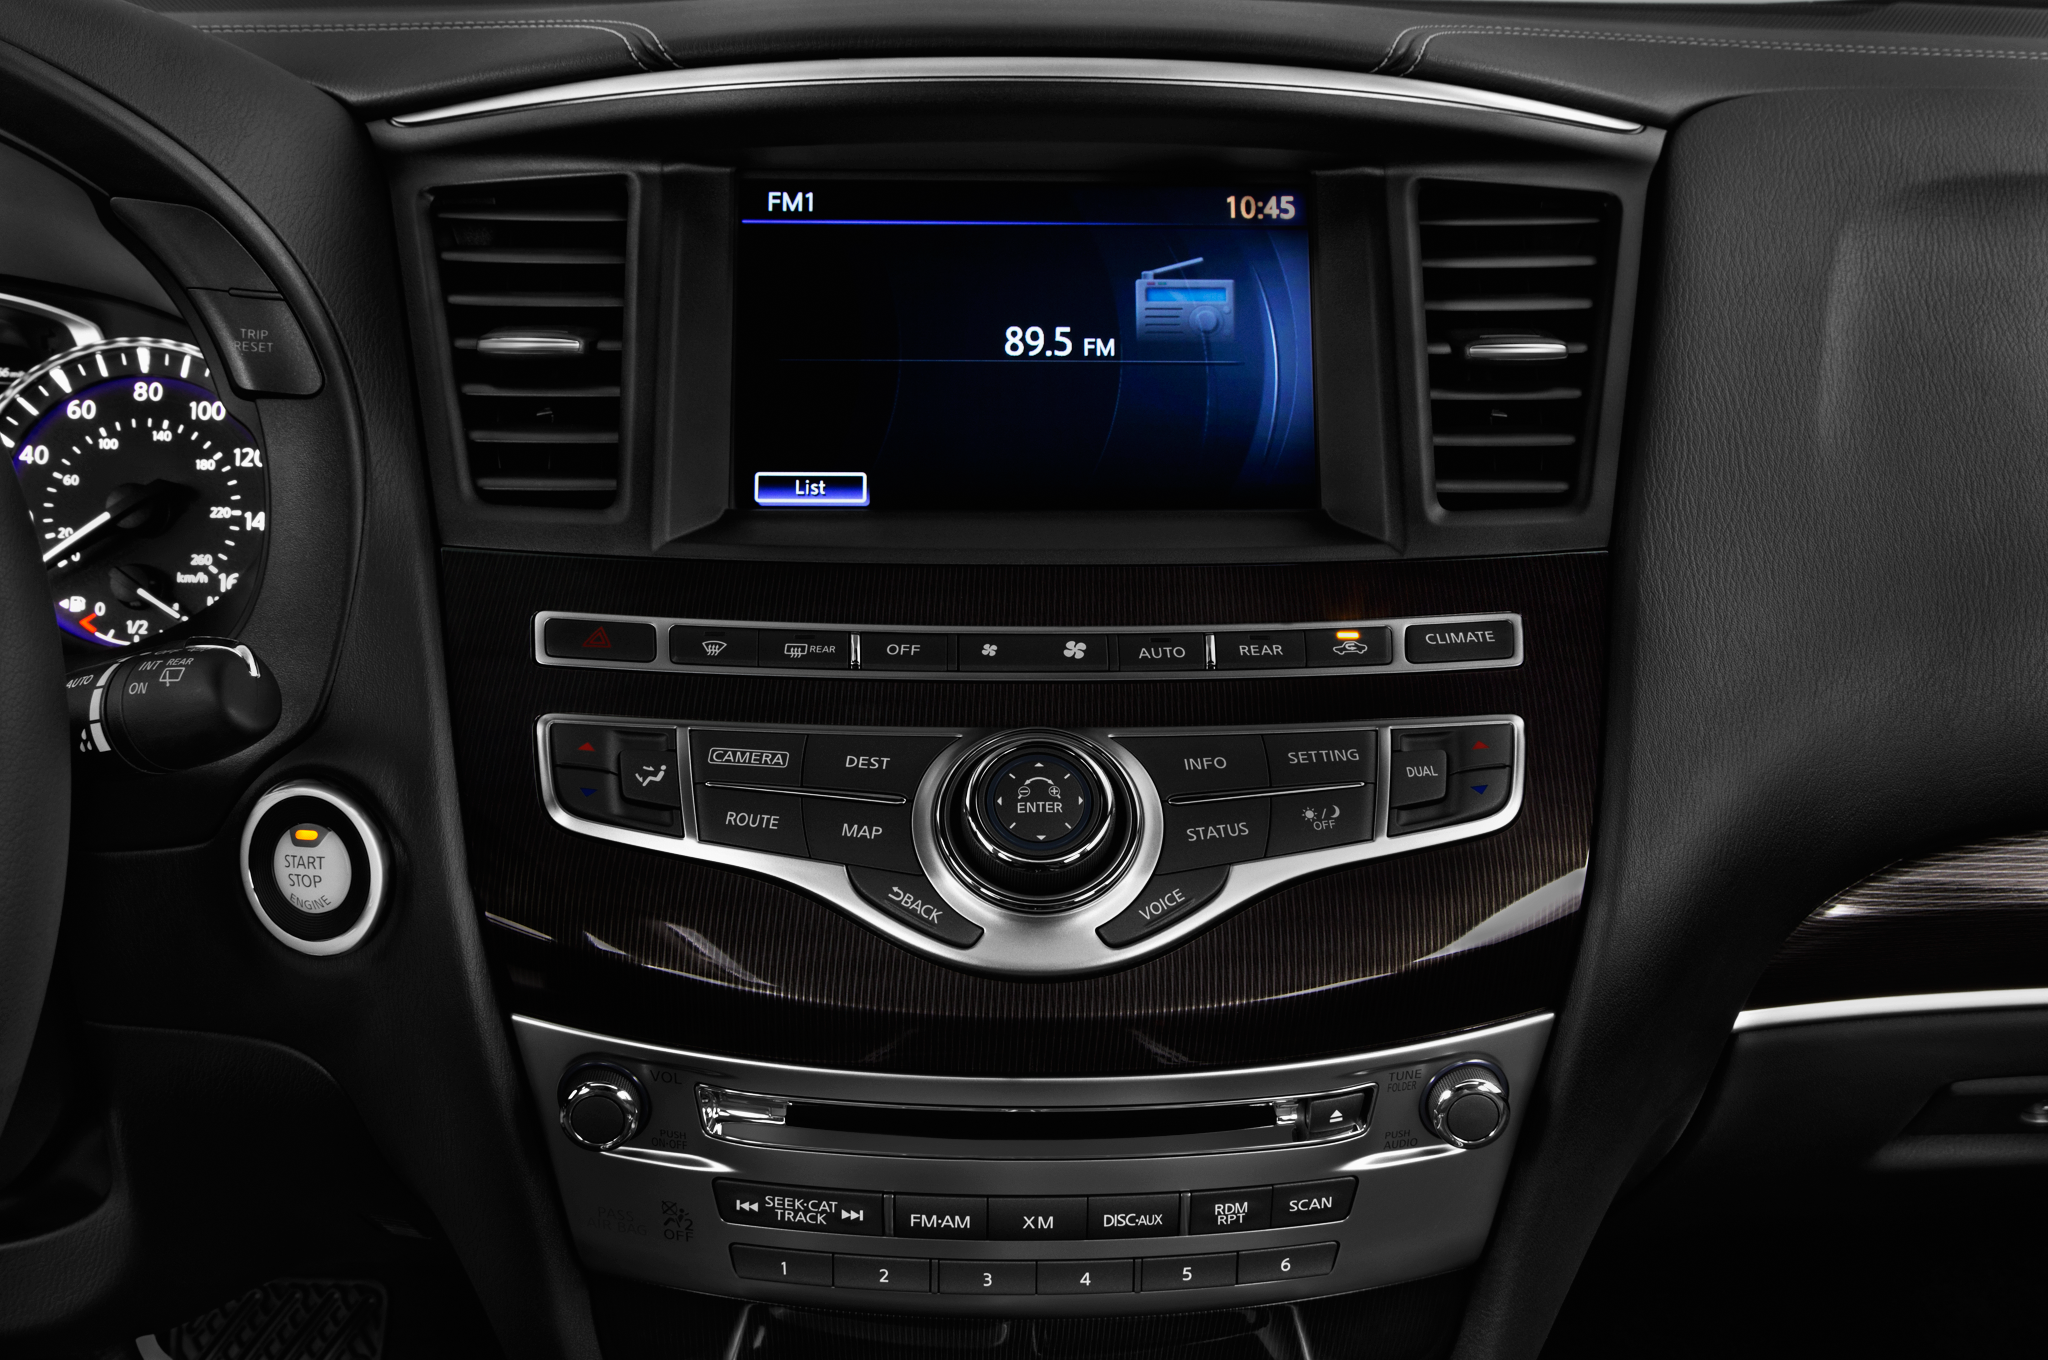 2017 Infiniti Qx60 Receives Extra 30 Hp Priced At 44095 2014 Ford Focus Stereo Upgrade 46 51